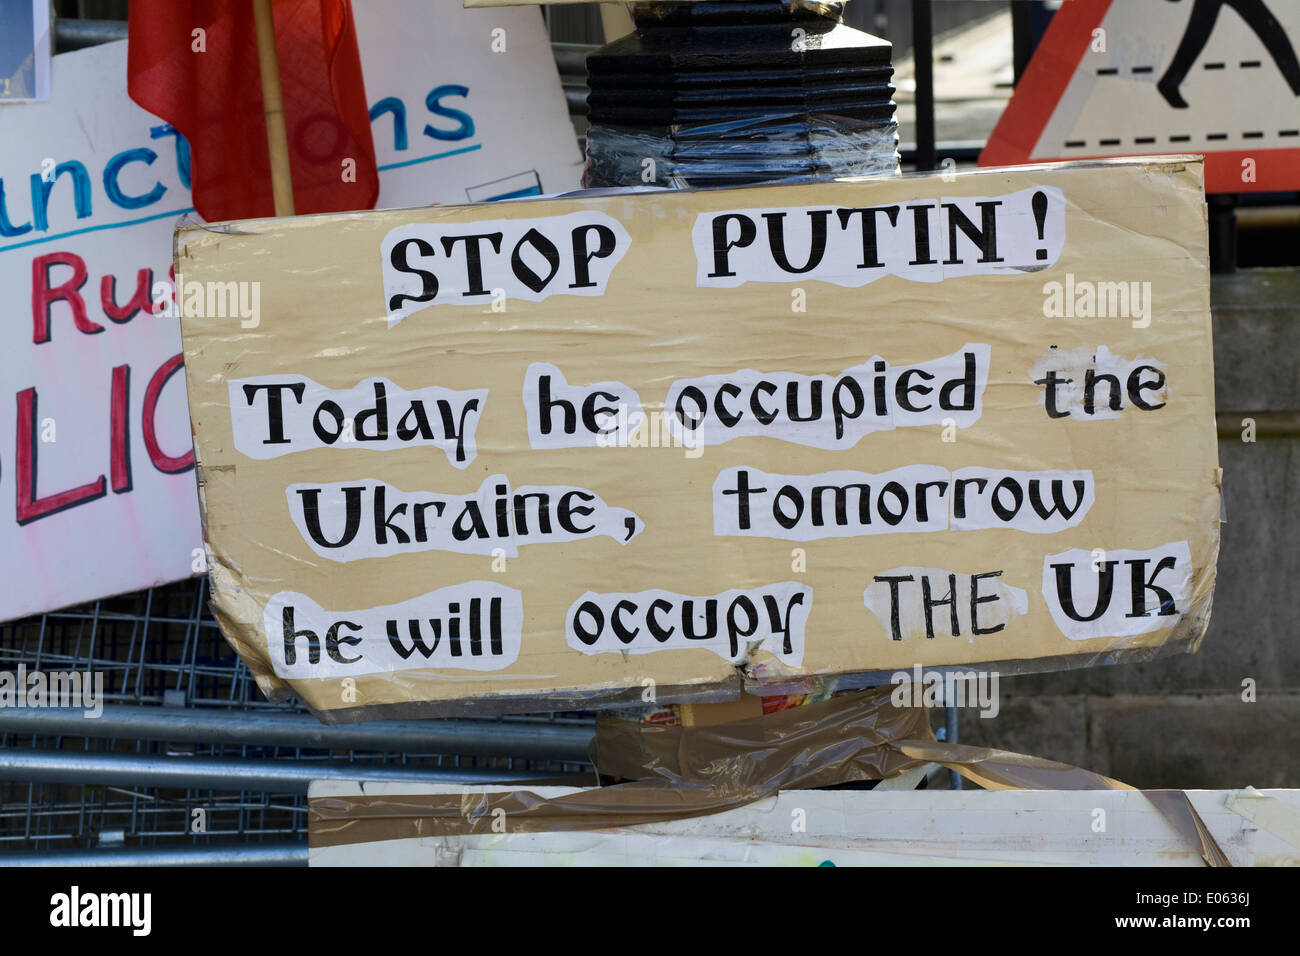 Protest outside Downing Street for the Government to take action against President Puttin invasion of the Ukraine Stock Photo